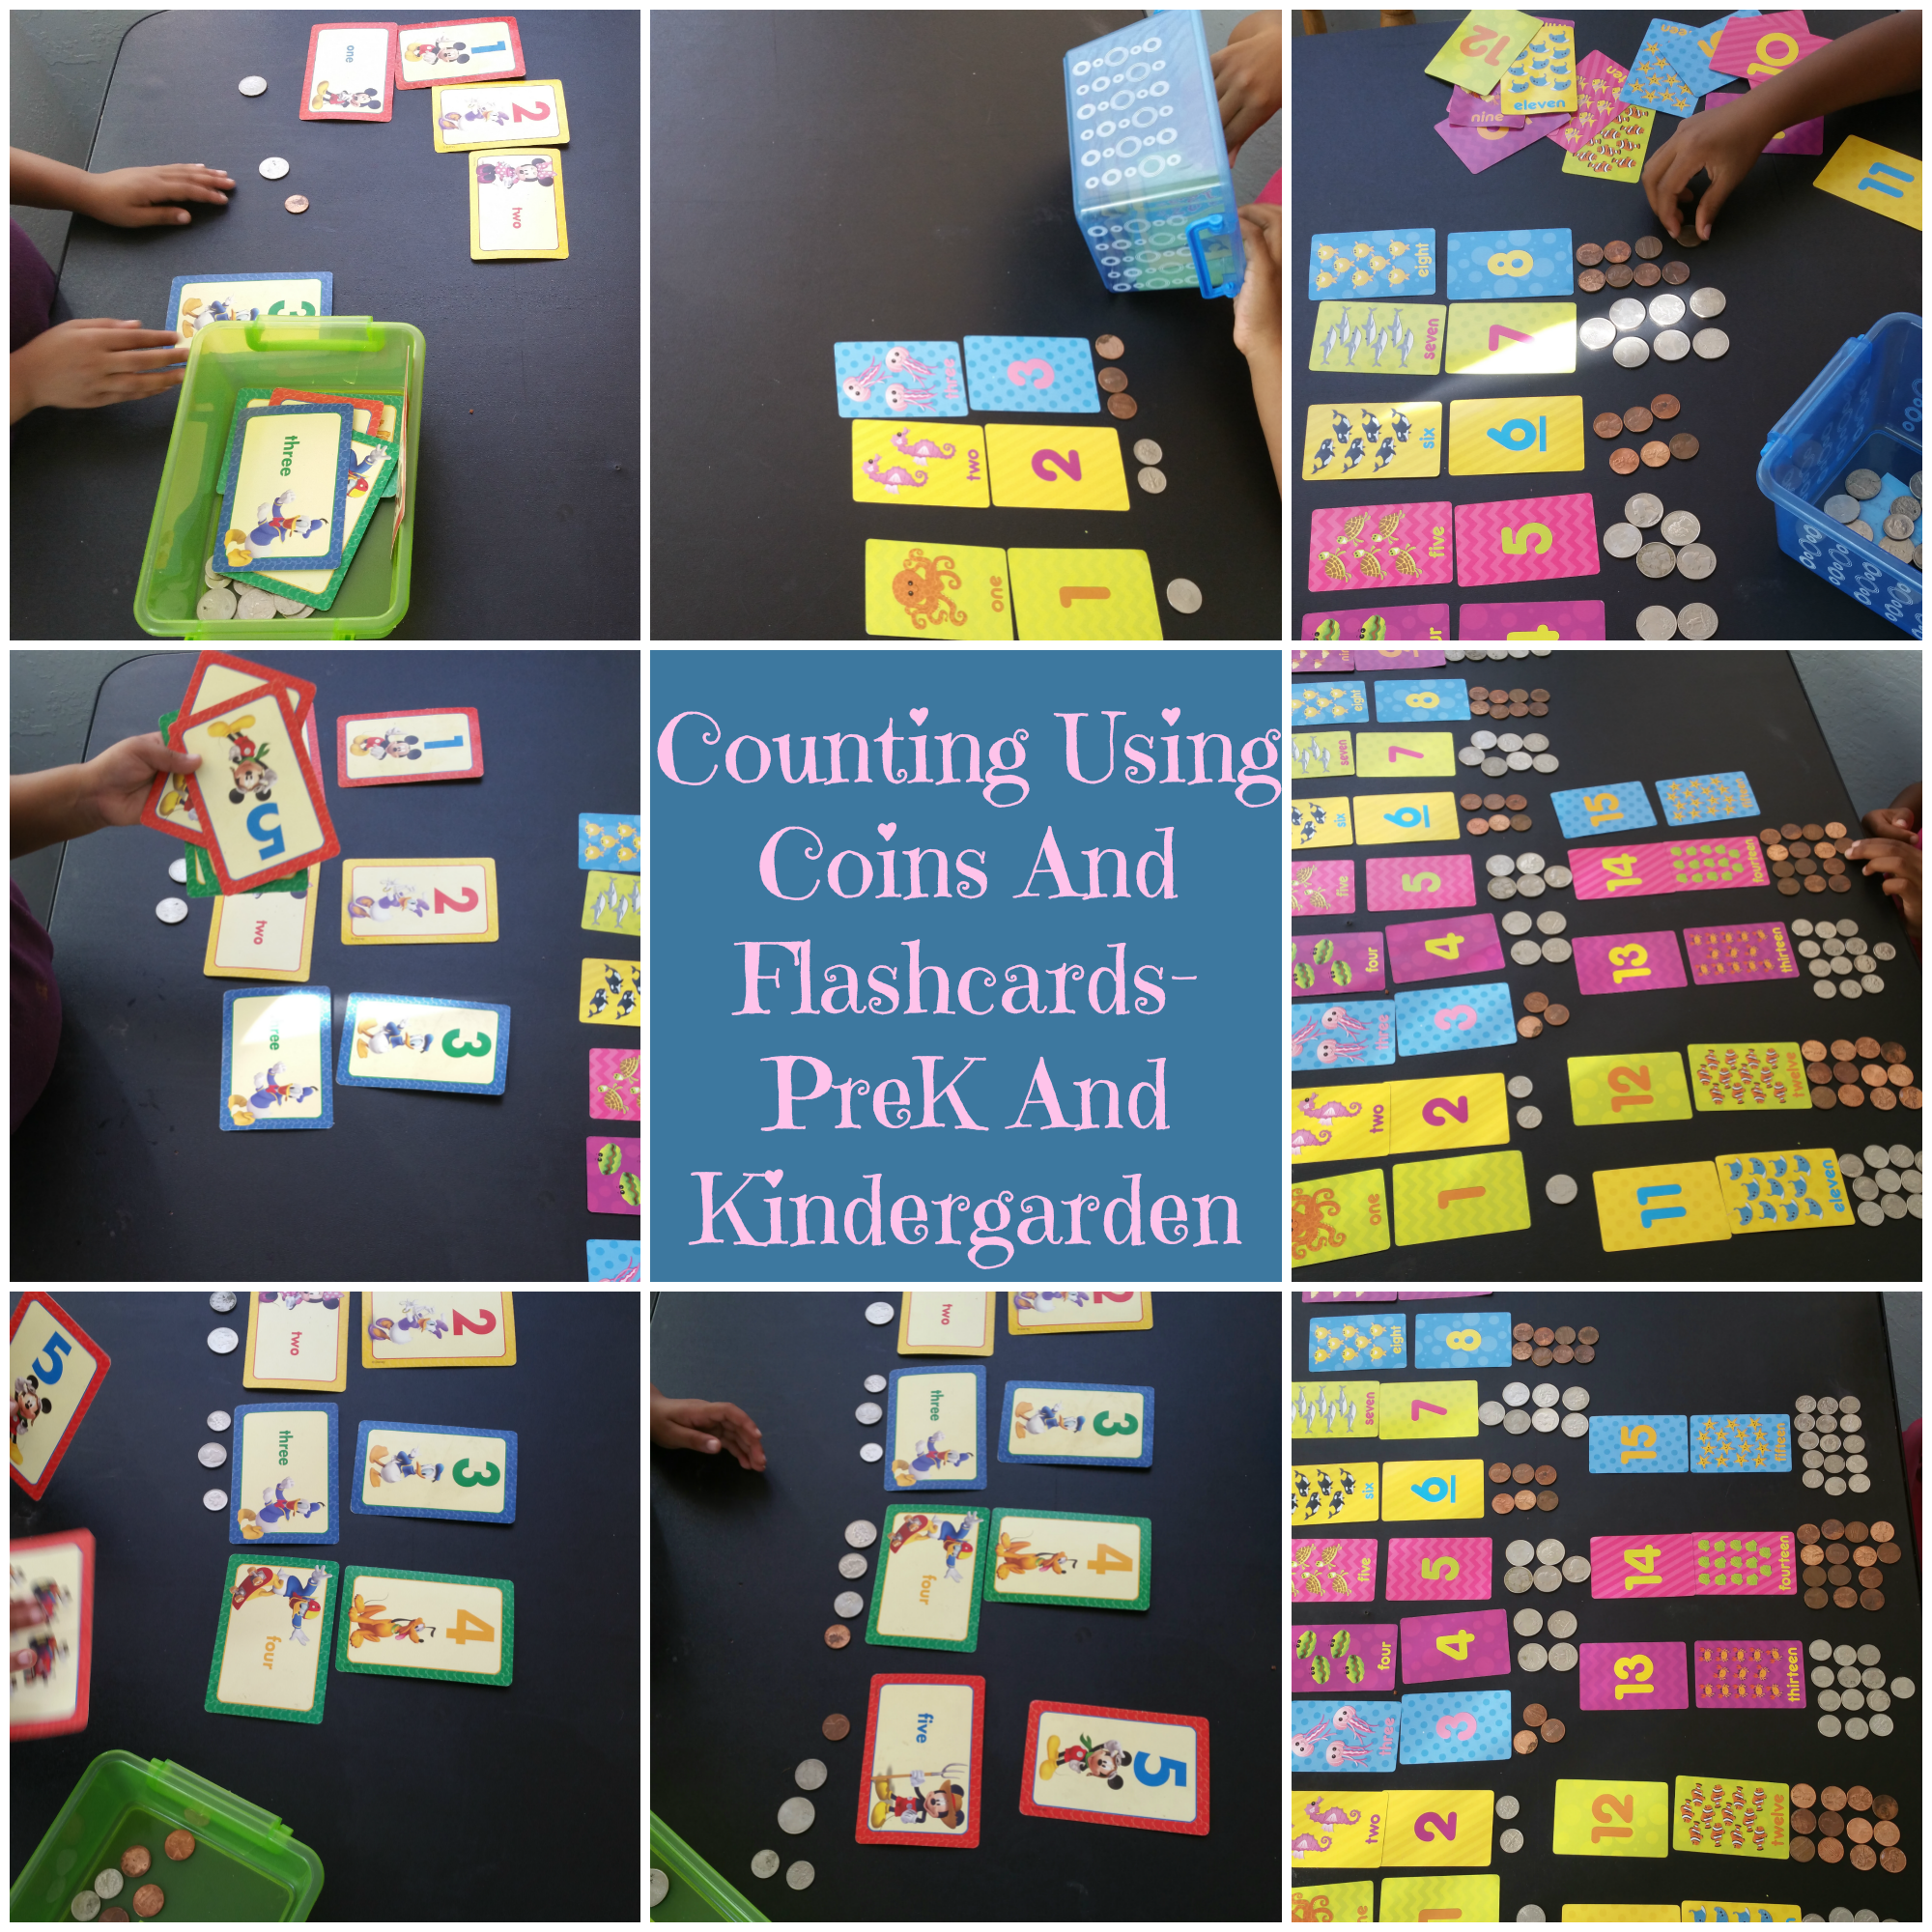 Counting Using Coins And Flashcards-PreK And Kindergarten | Coins ...